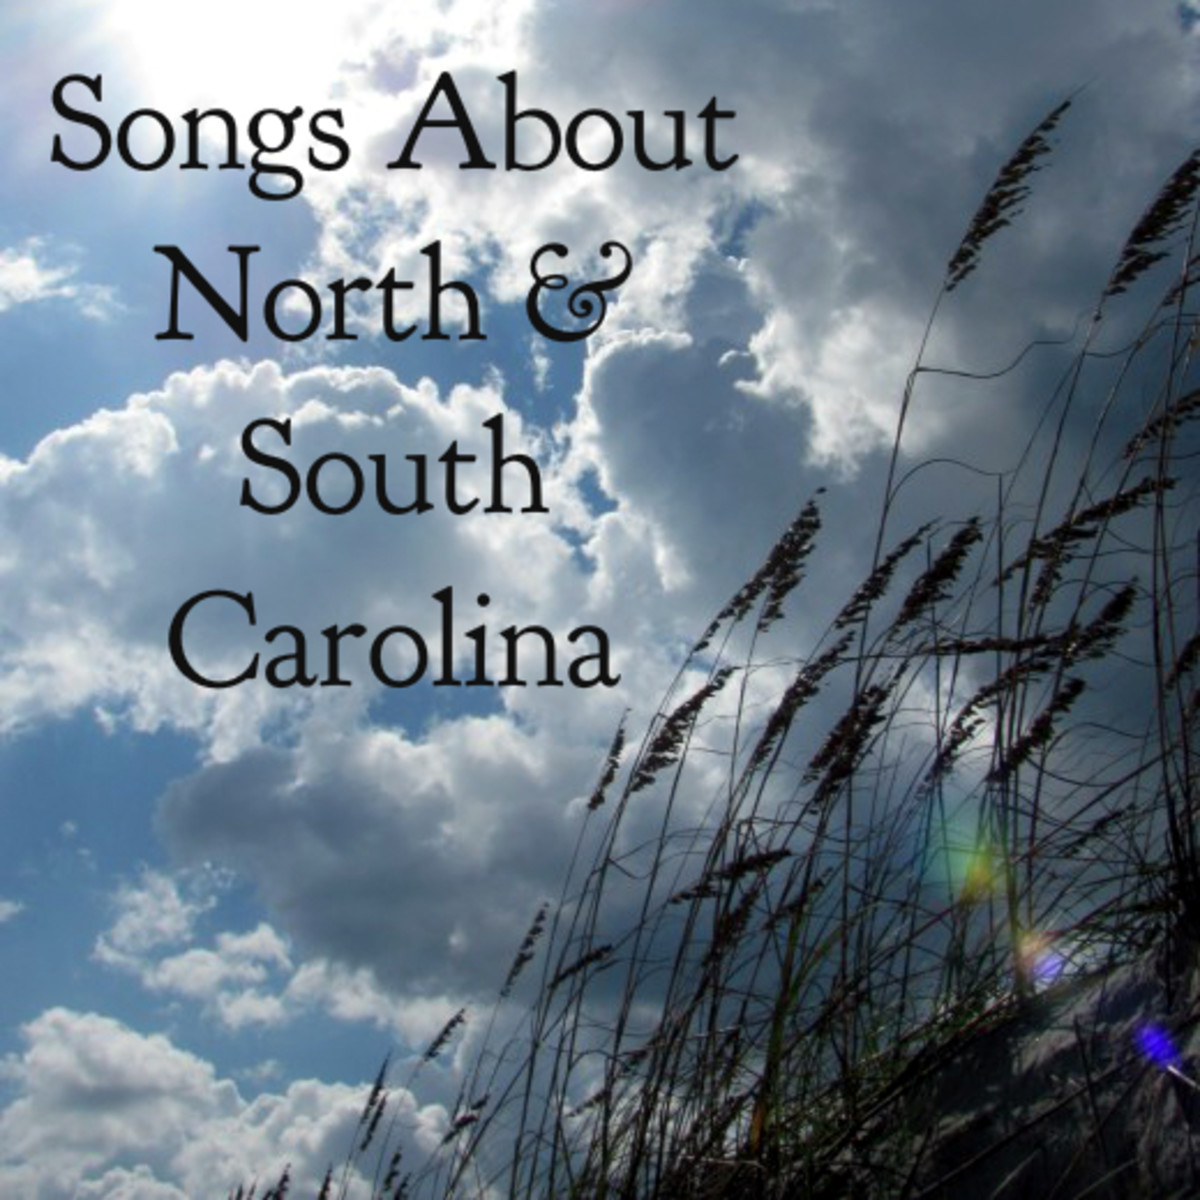 Celebrate the magic of the Carolinas with a playlist of songs about the states that boast both beaches and mountains, good Southern food and hospitality, sweet tea and shag dancing and lots of warm sunshine.